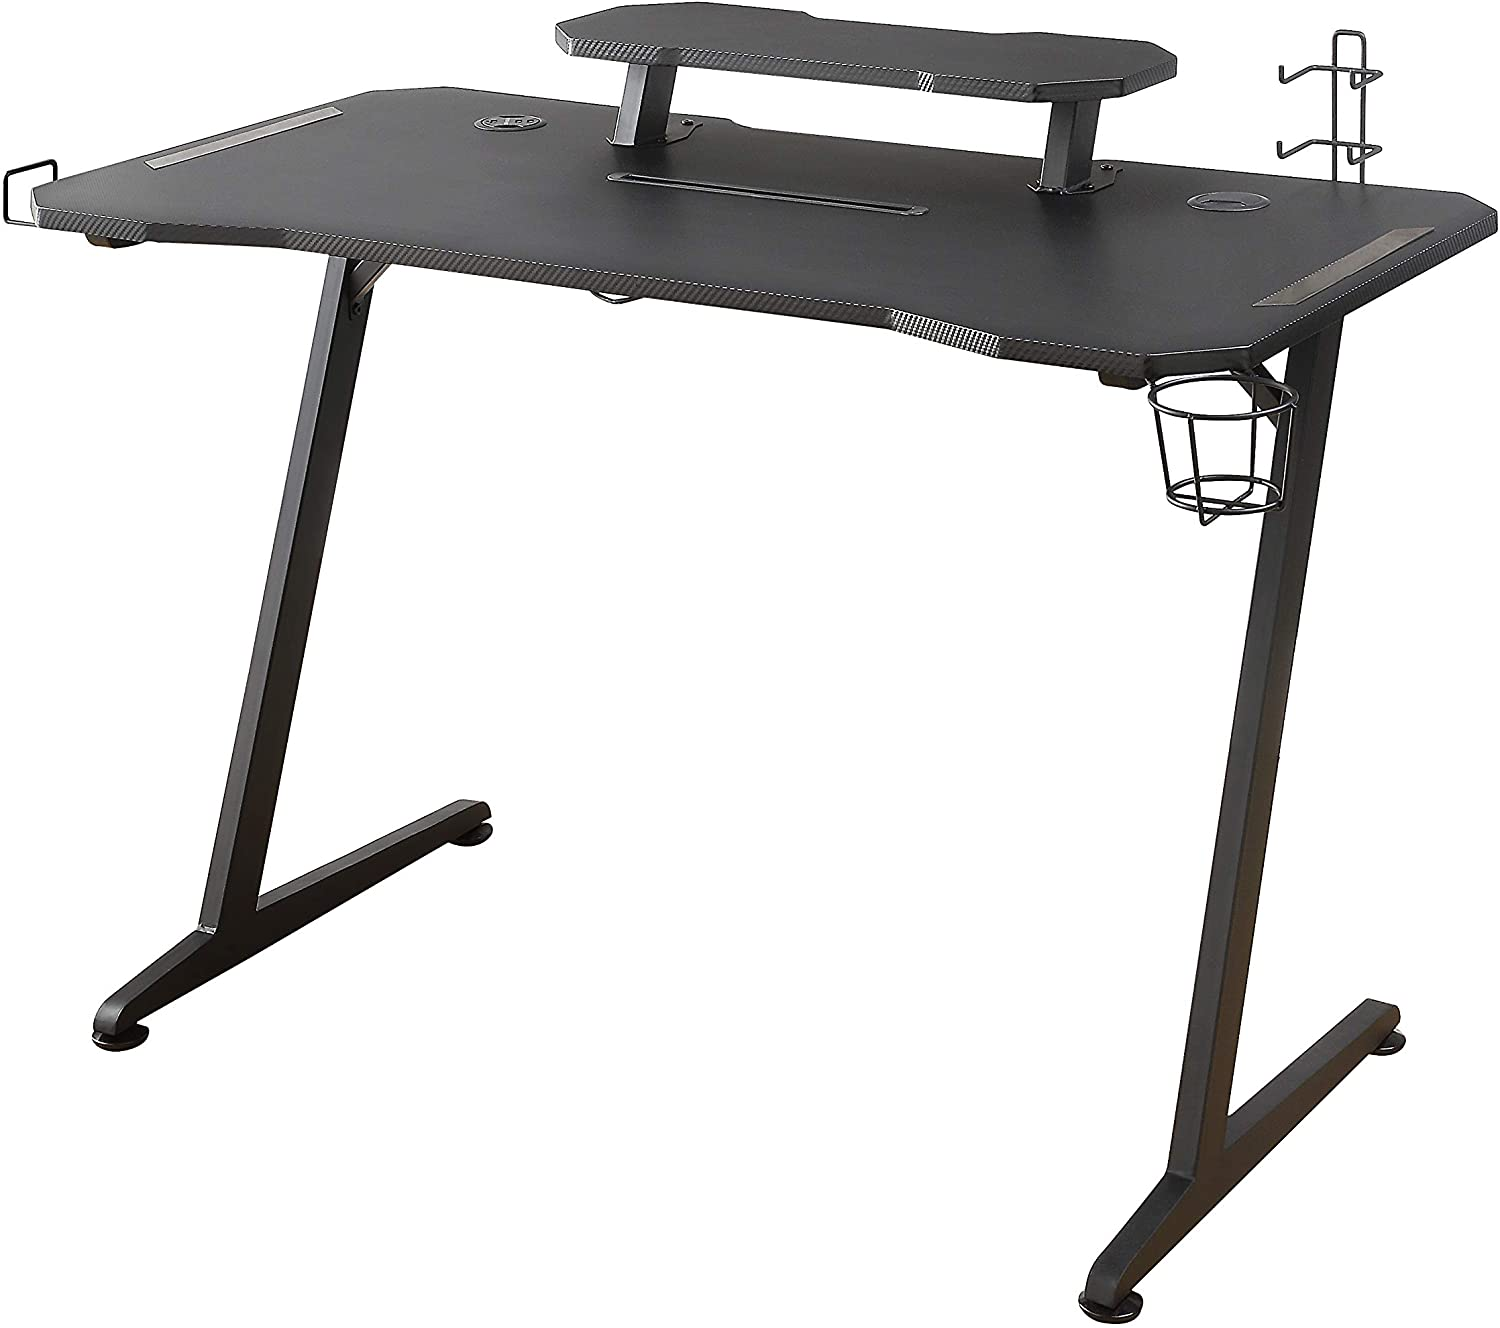 Mesa gaming - Woxter Stinger Gaming Desk Elite, Negro